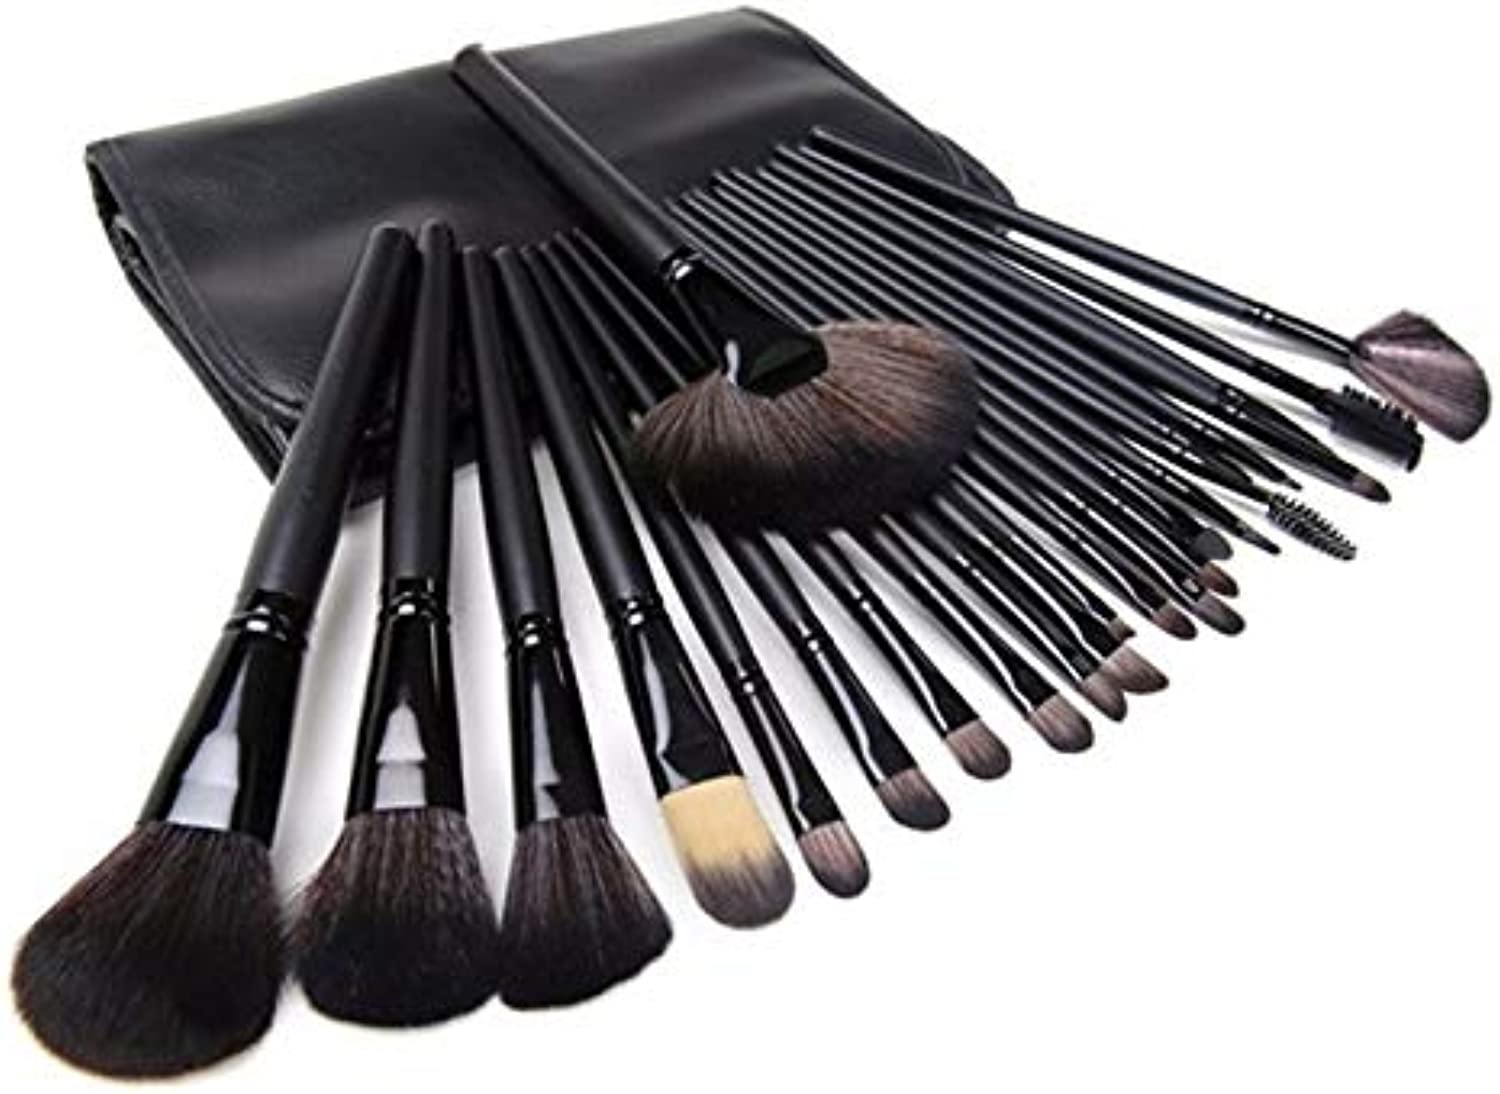 Fashion 24pcs Makeup Brush with Easy to Carry Black PU Bag Pretty (color   Black)